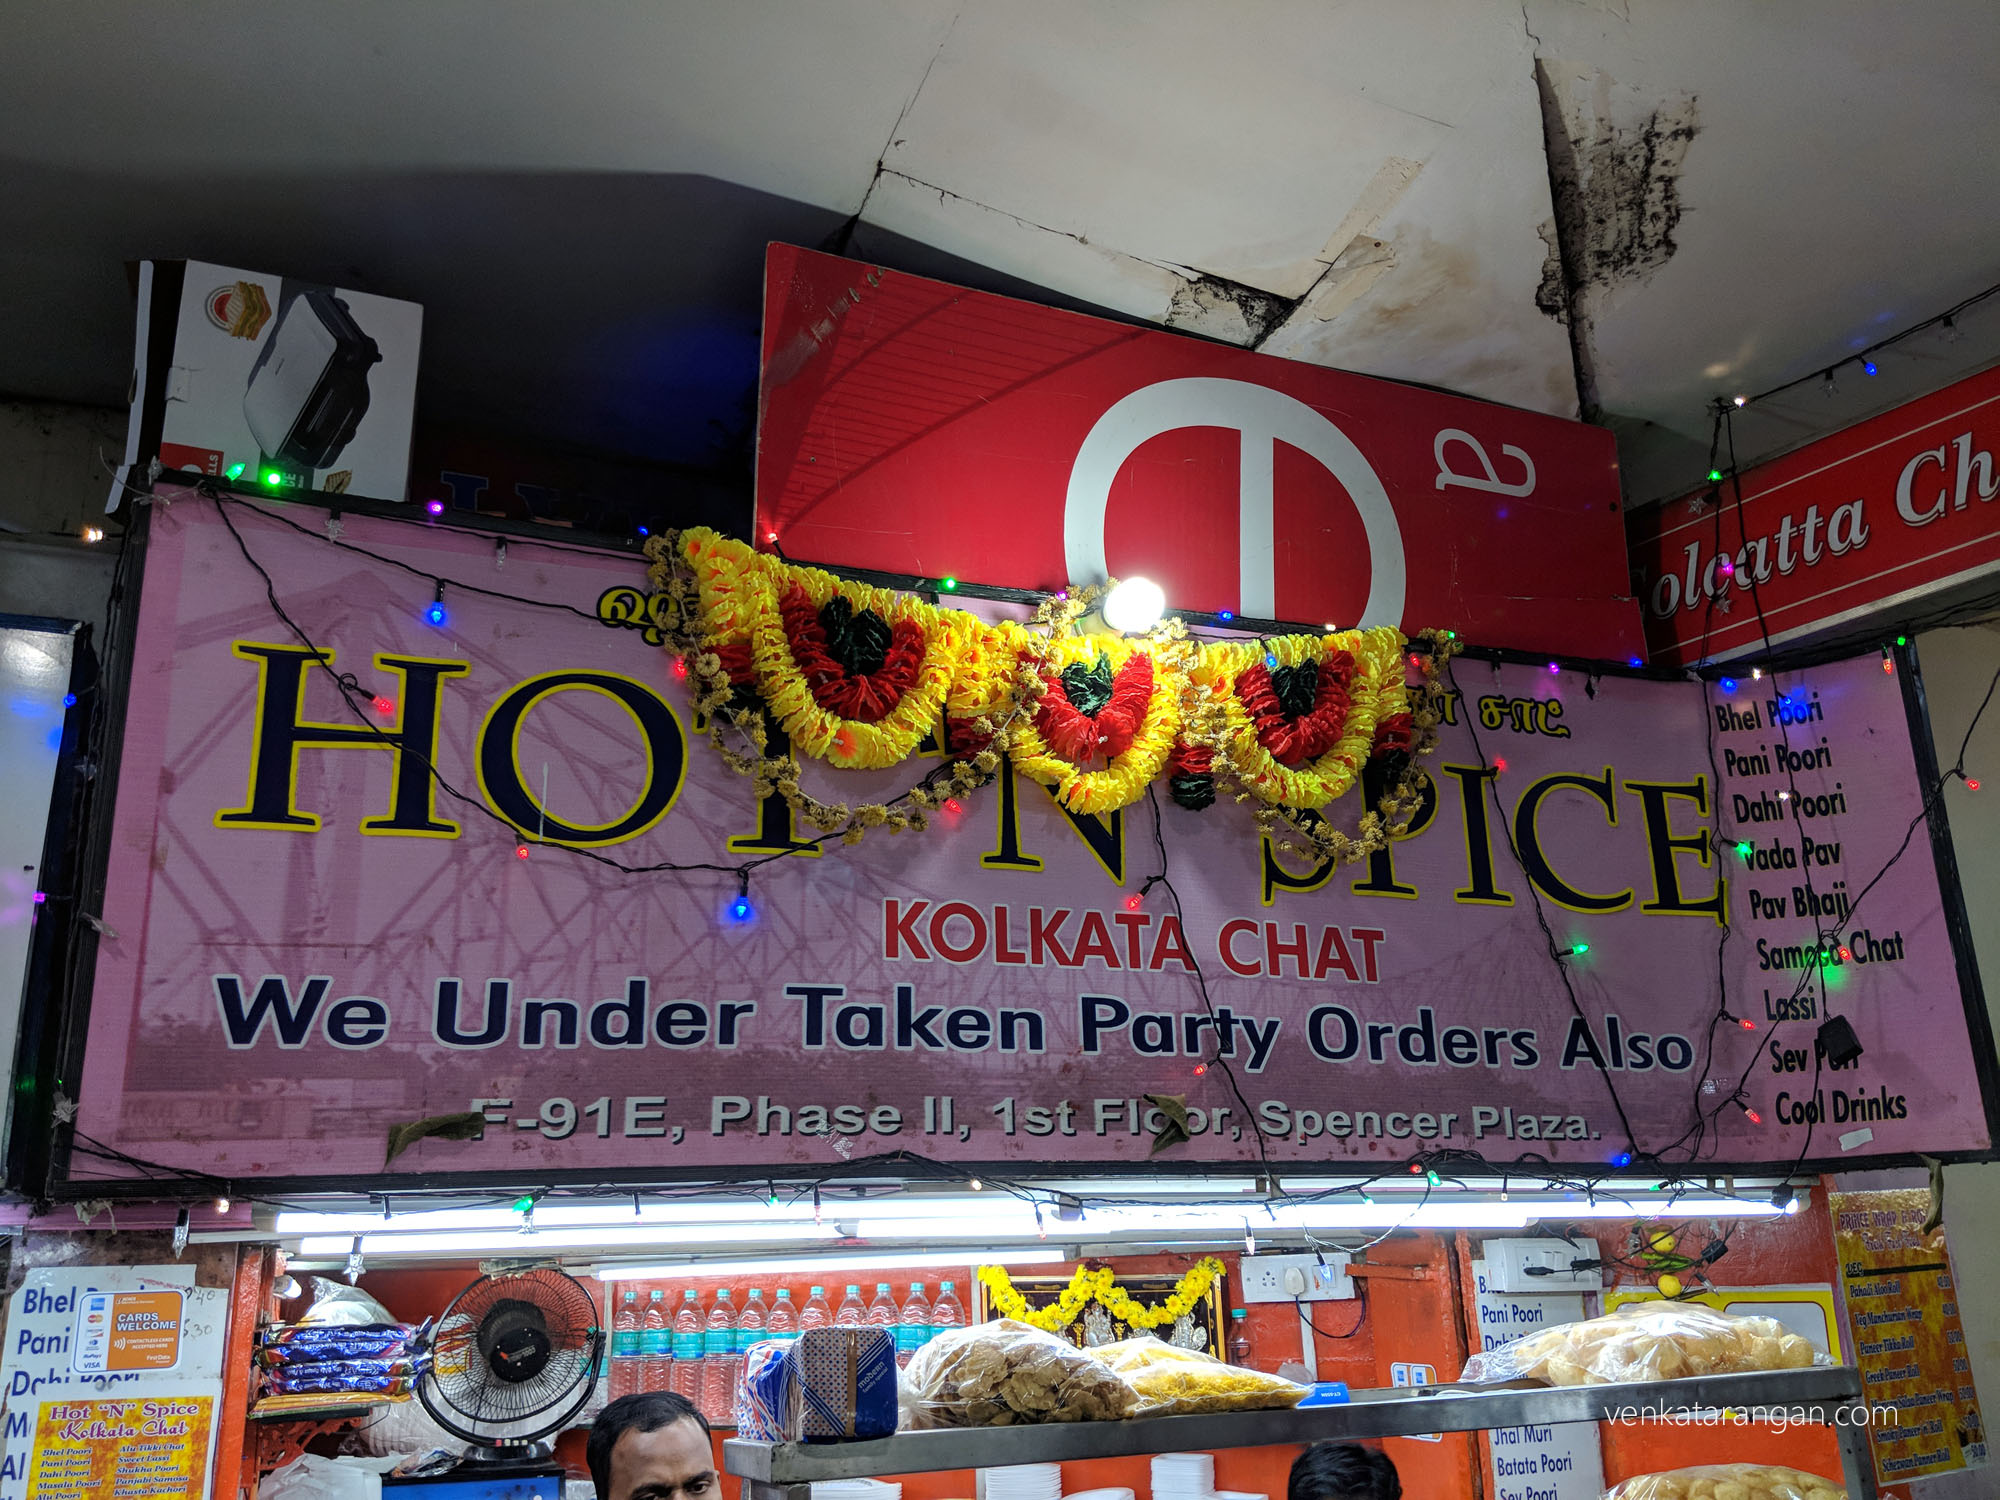 Hot 'n' Spice - Kolkata Chat - Spencer Plaza